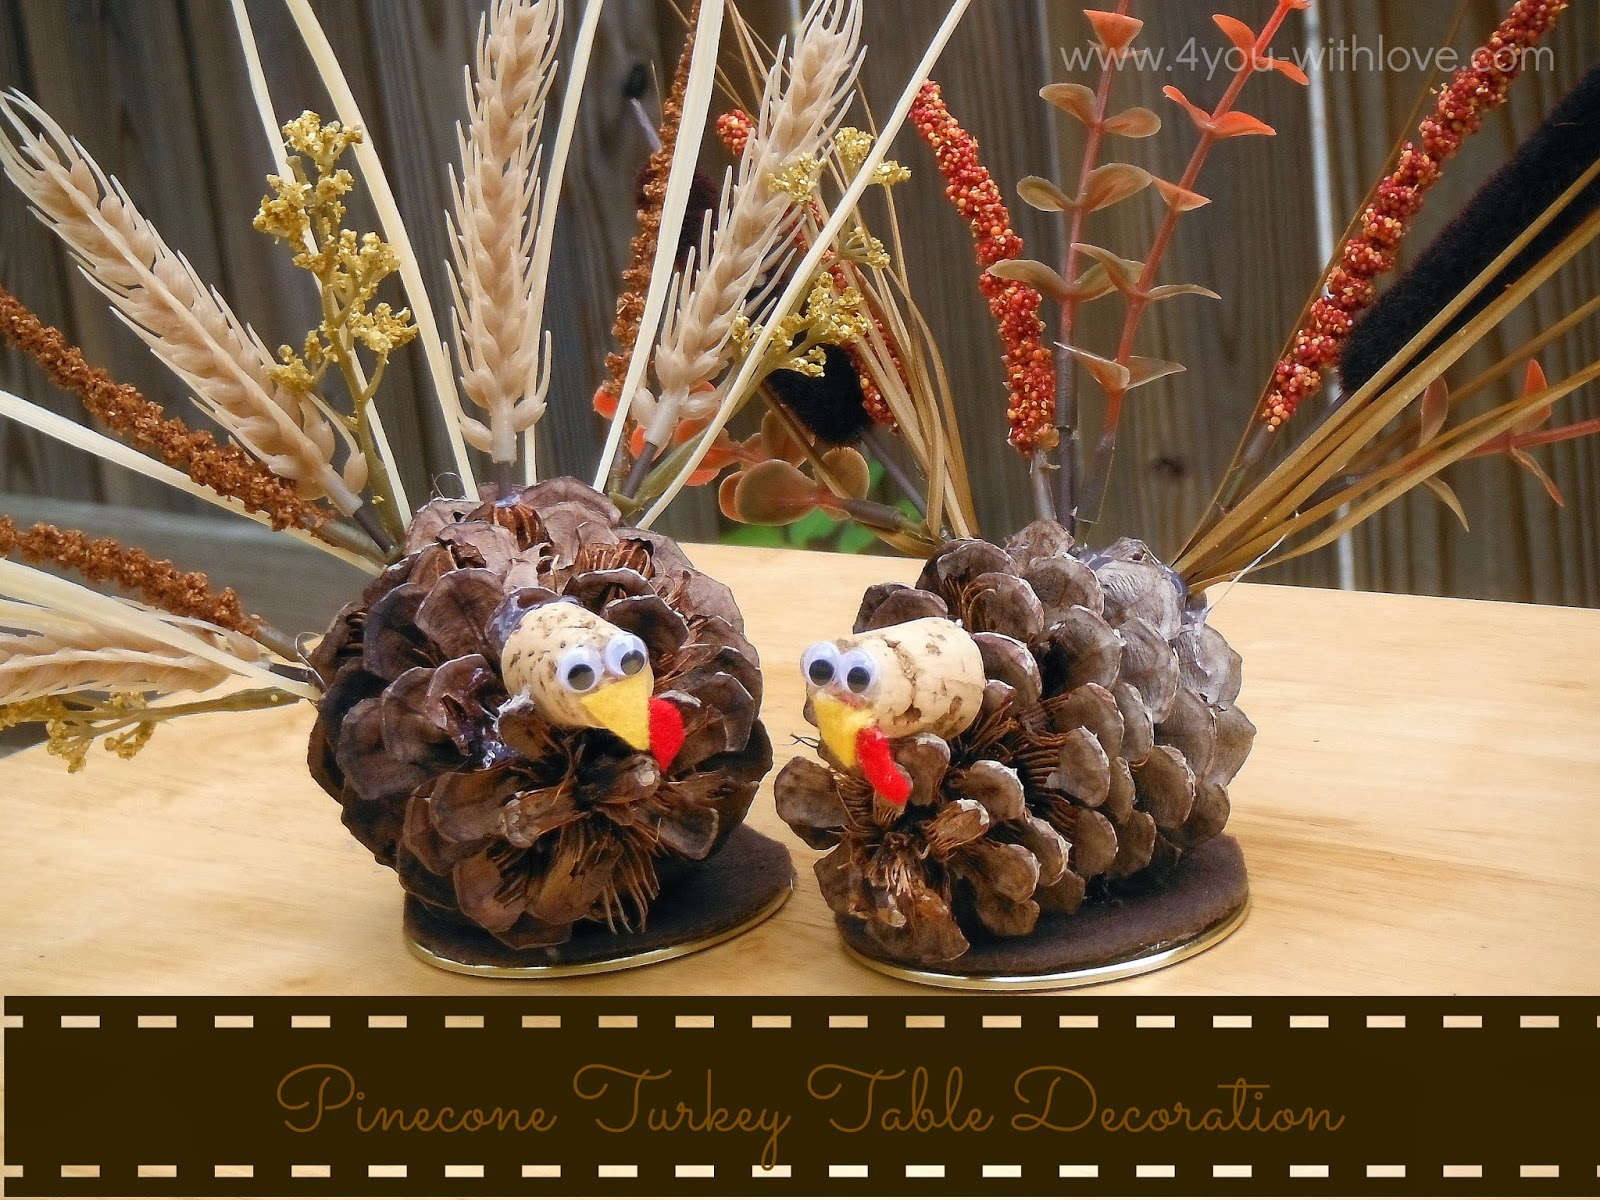 Pinecone Turkey Table Decorations Turkeytablescapes 4 You With Love